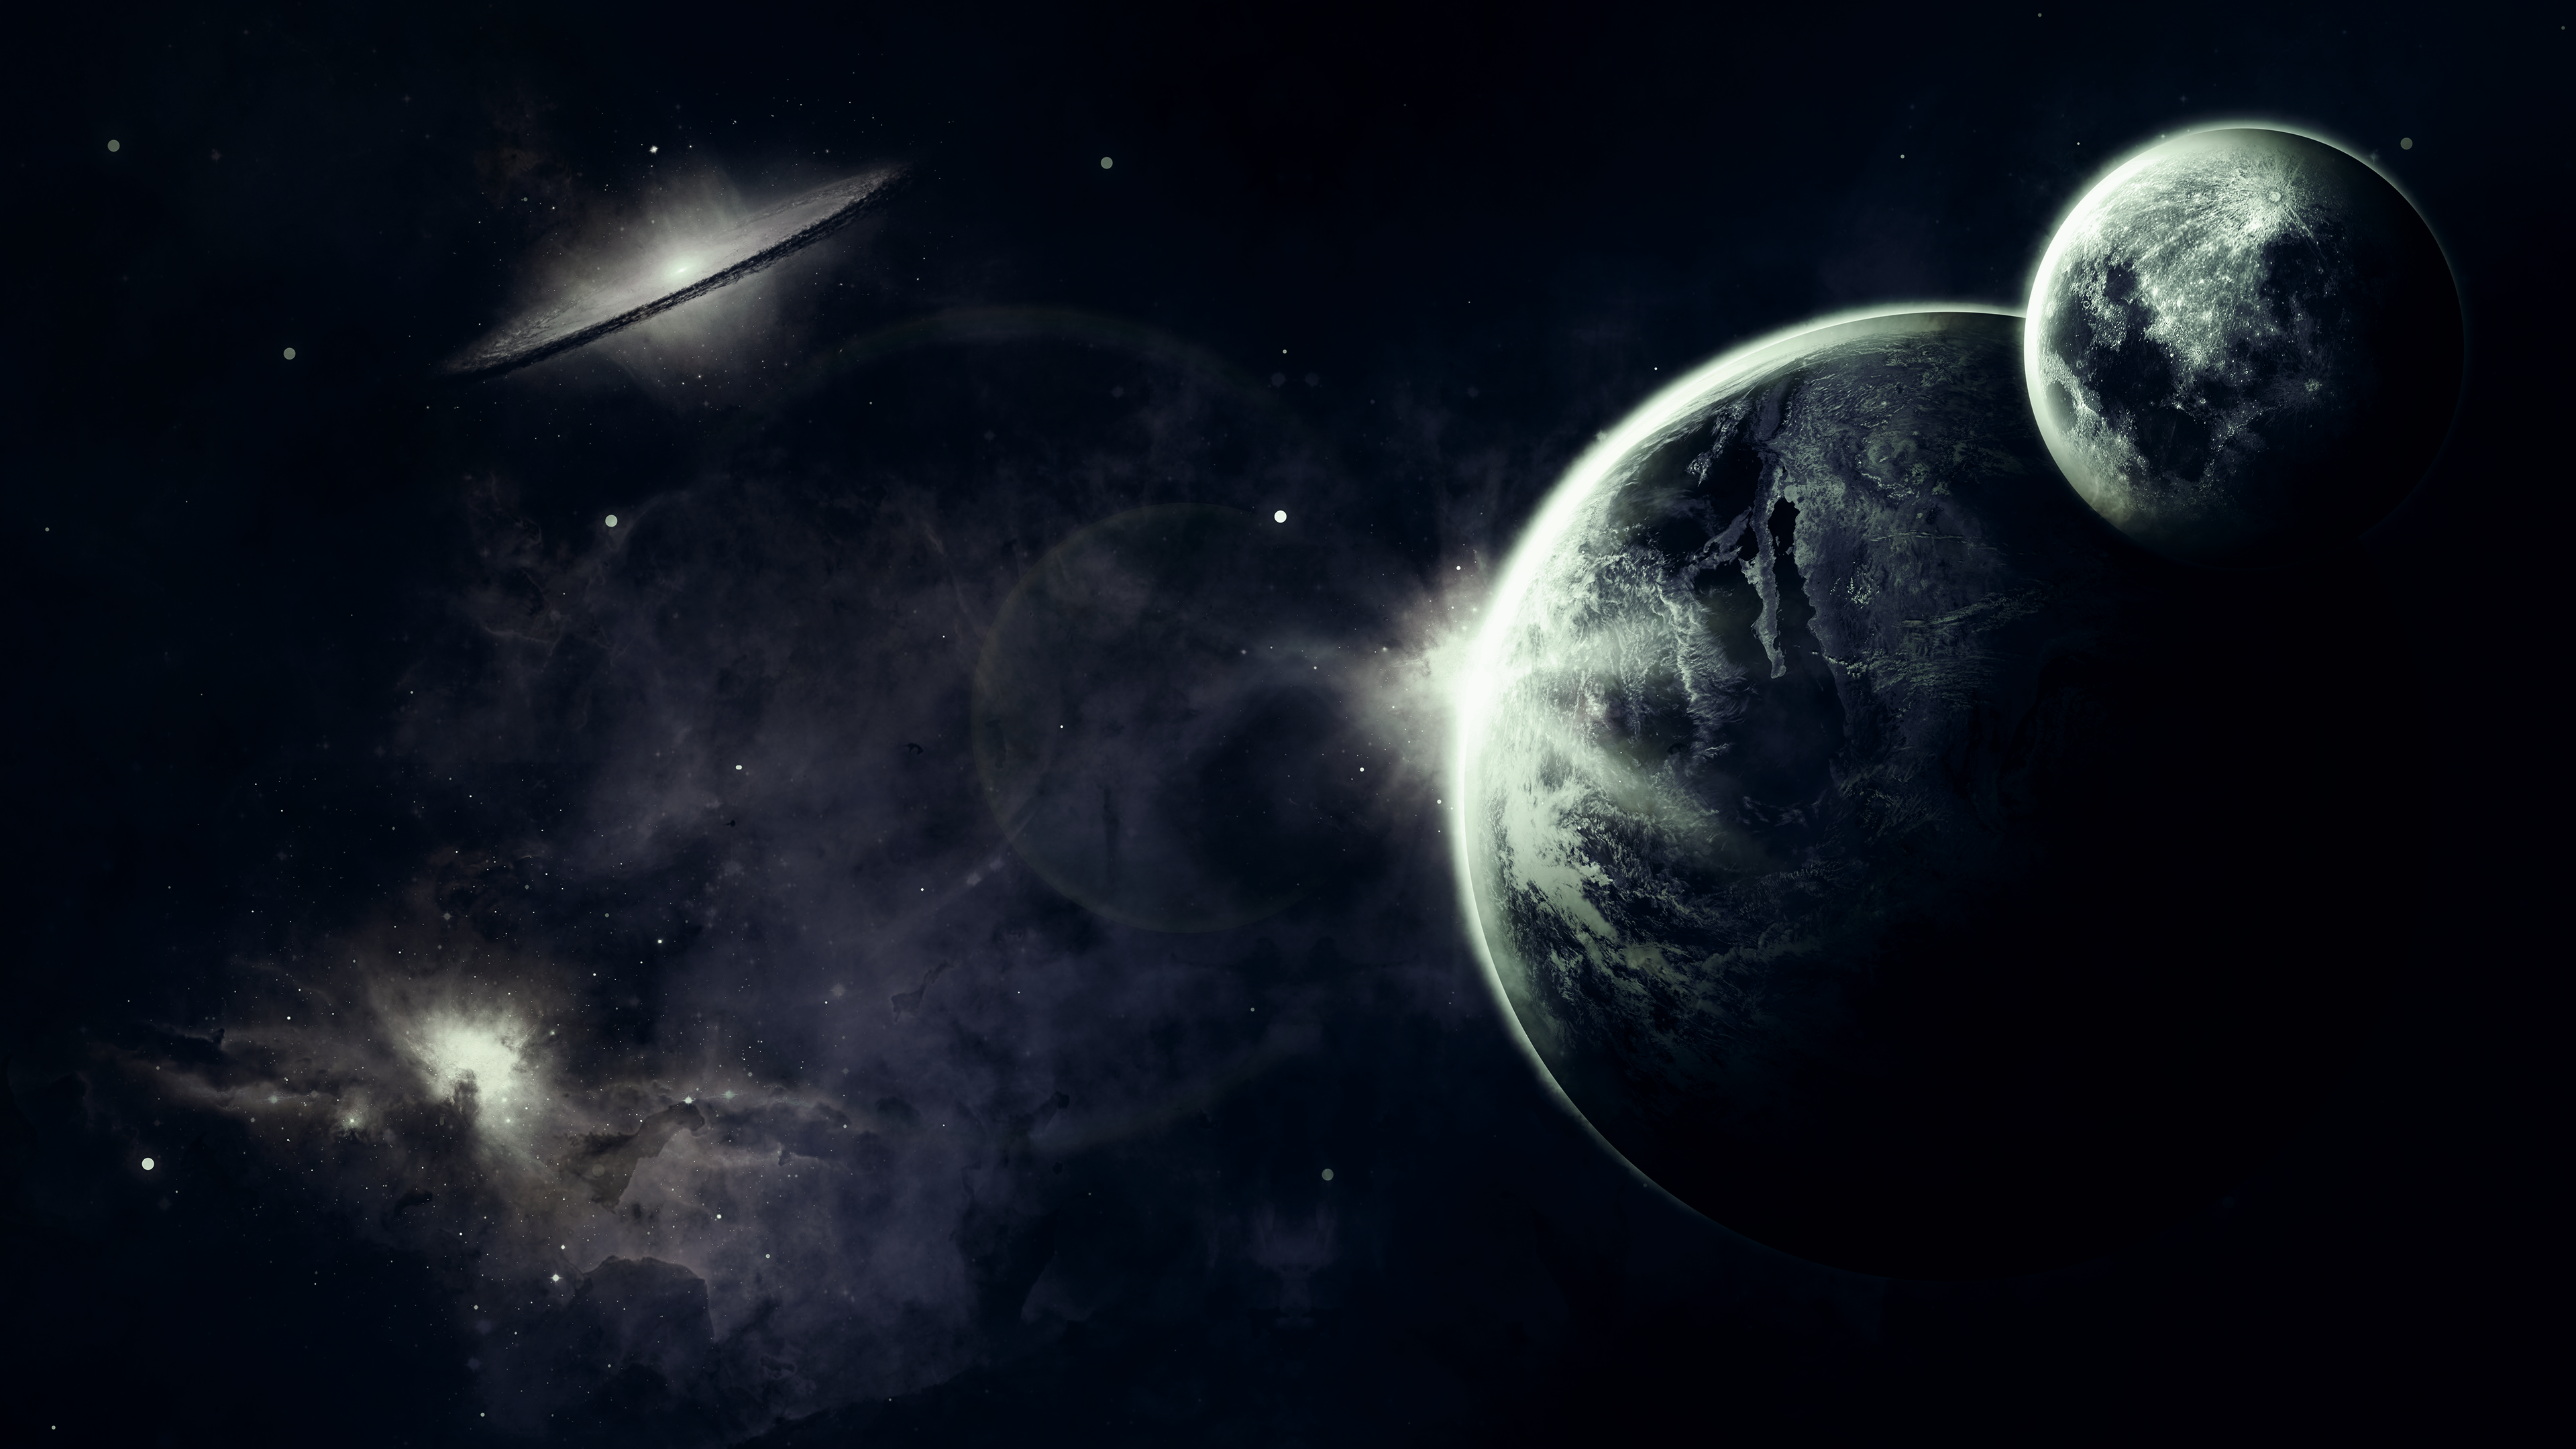 Download Free HD Dark Space Desktop Wallpaper In 4K ...0136